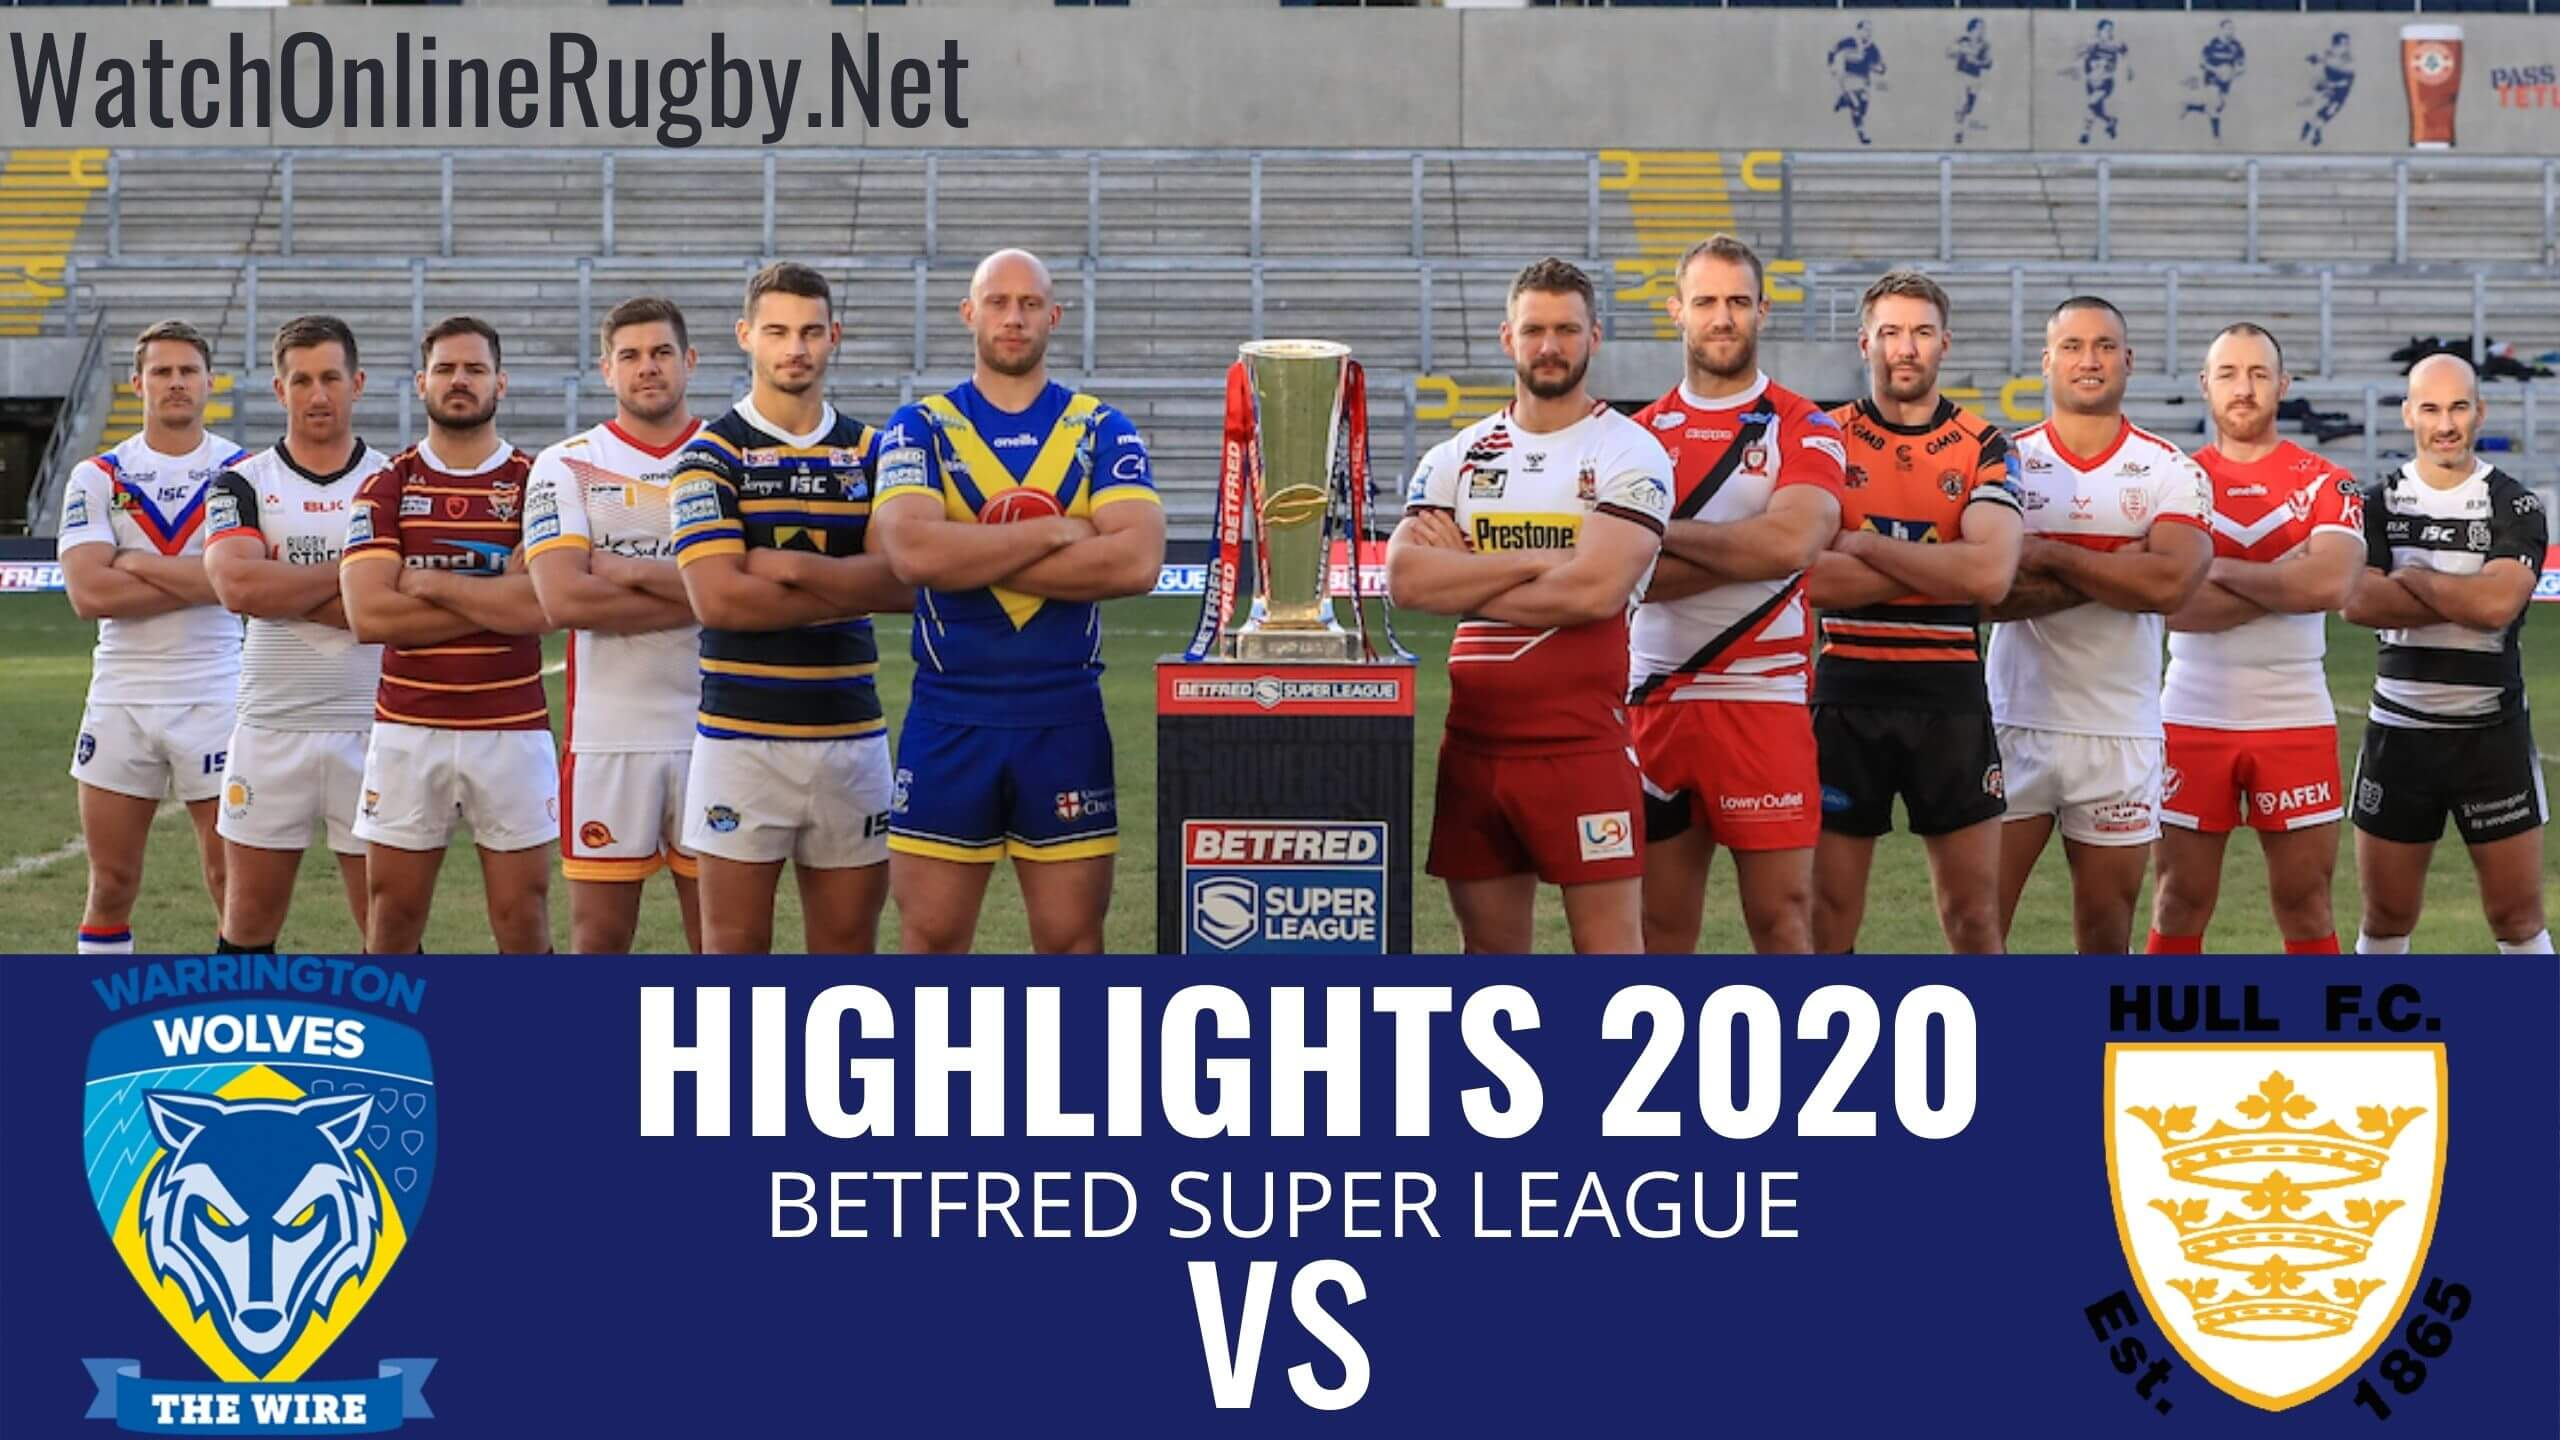 Wolves Vs Hull FC 2020 Highlights Rd 11